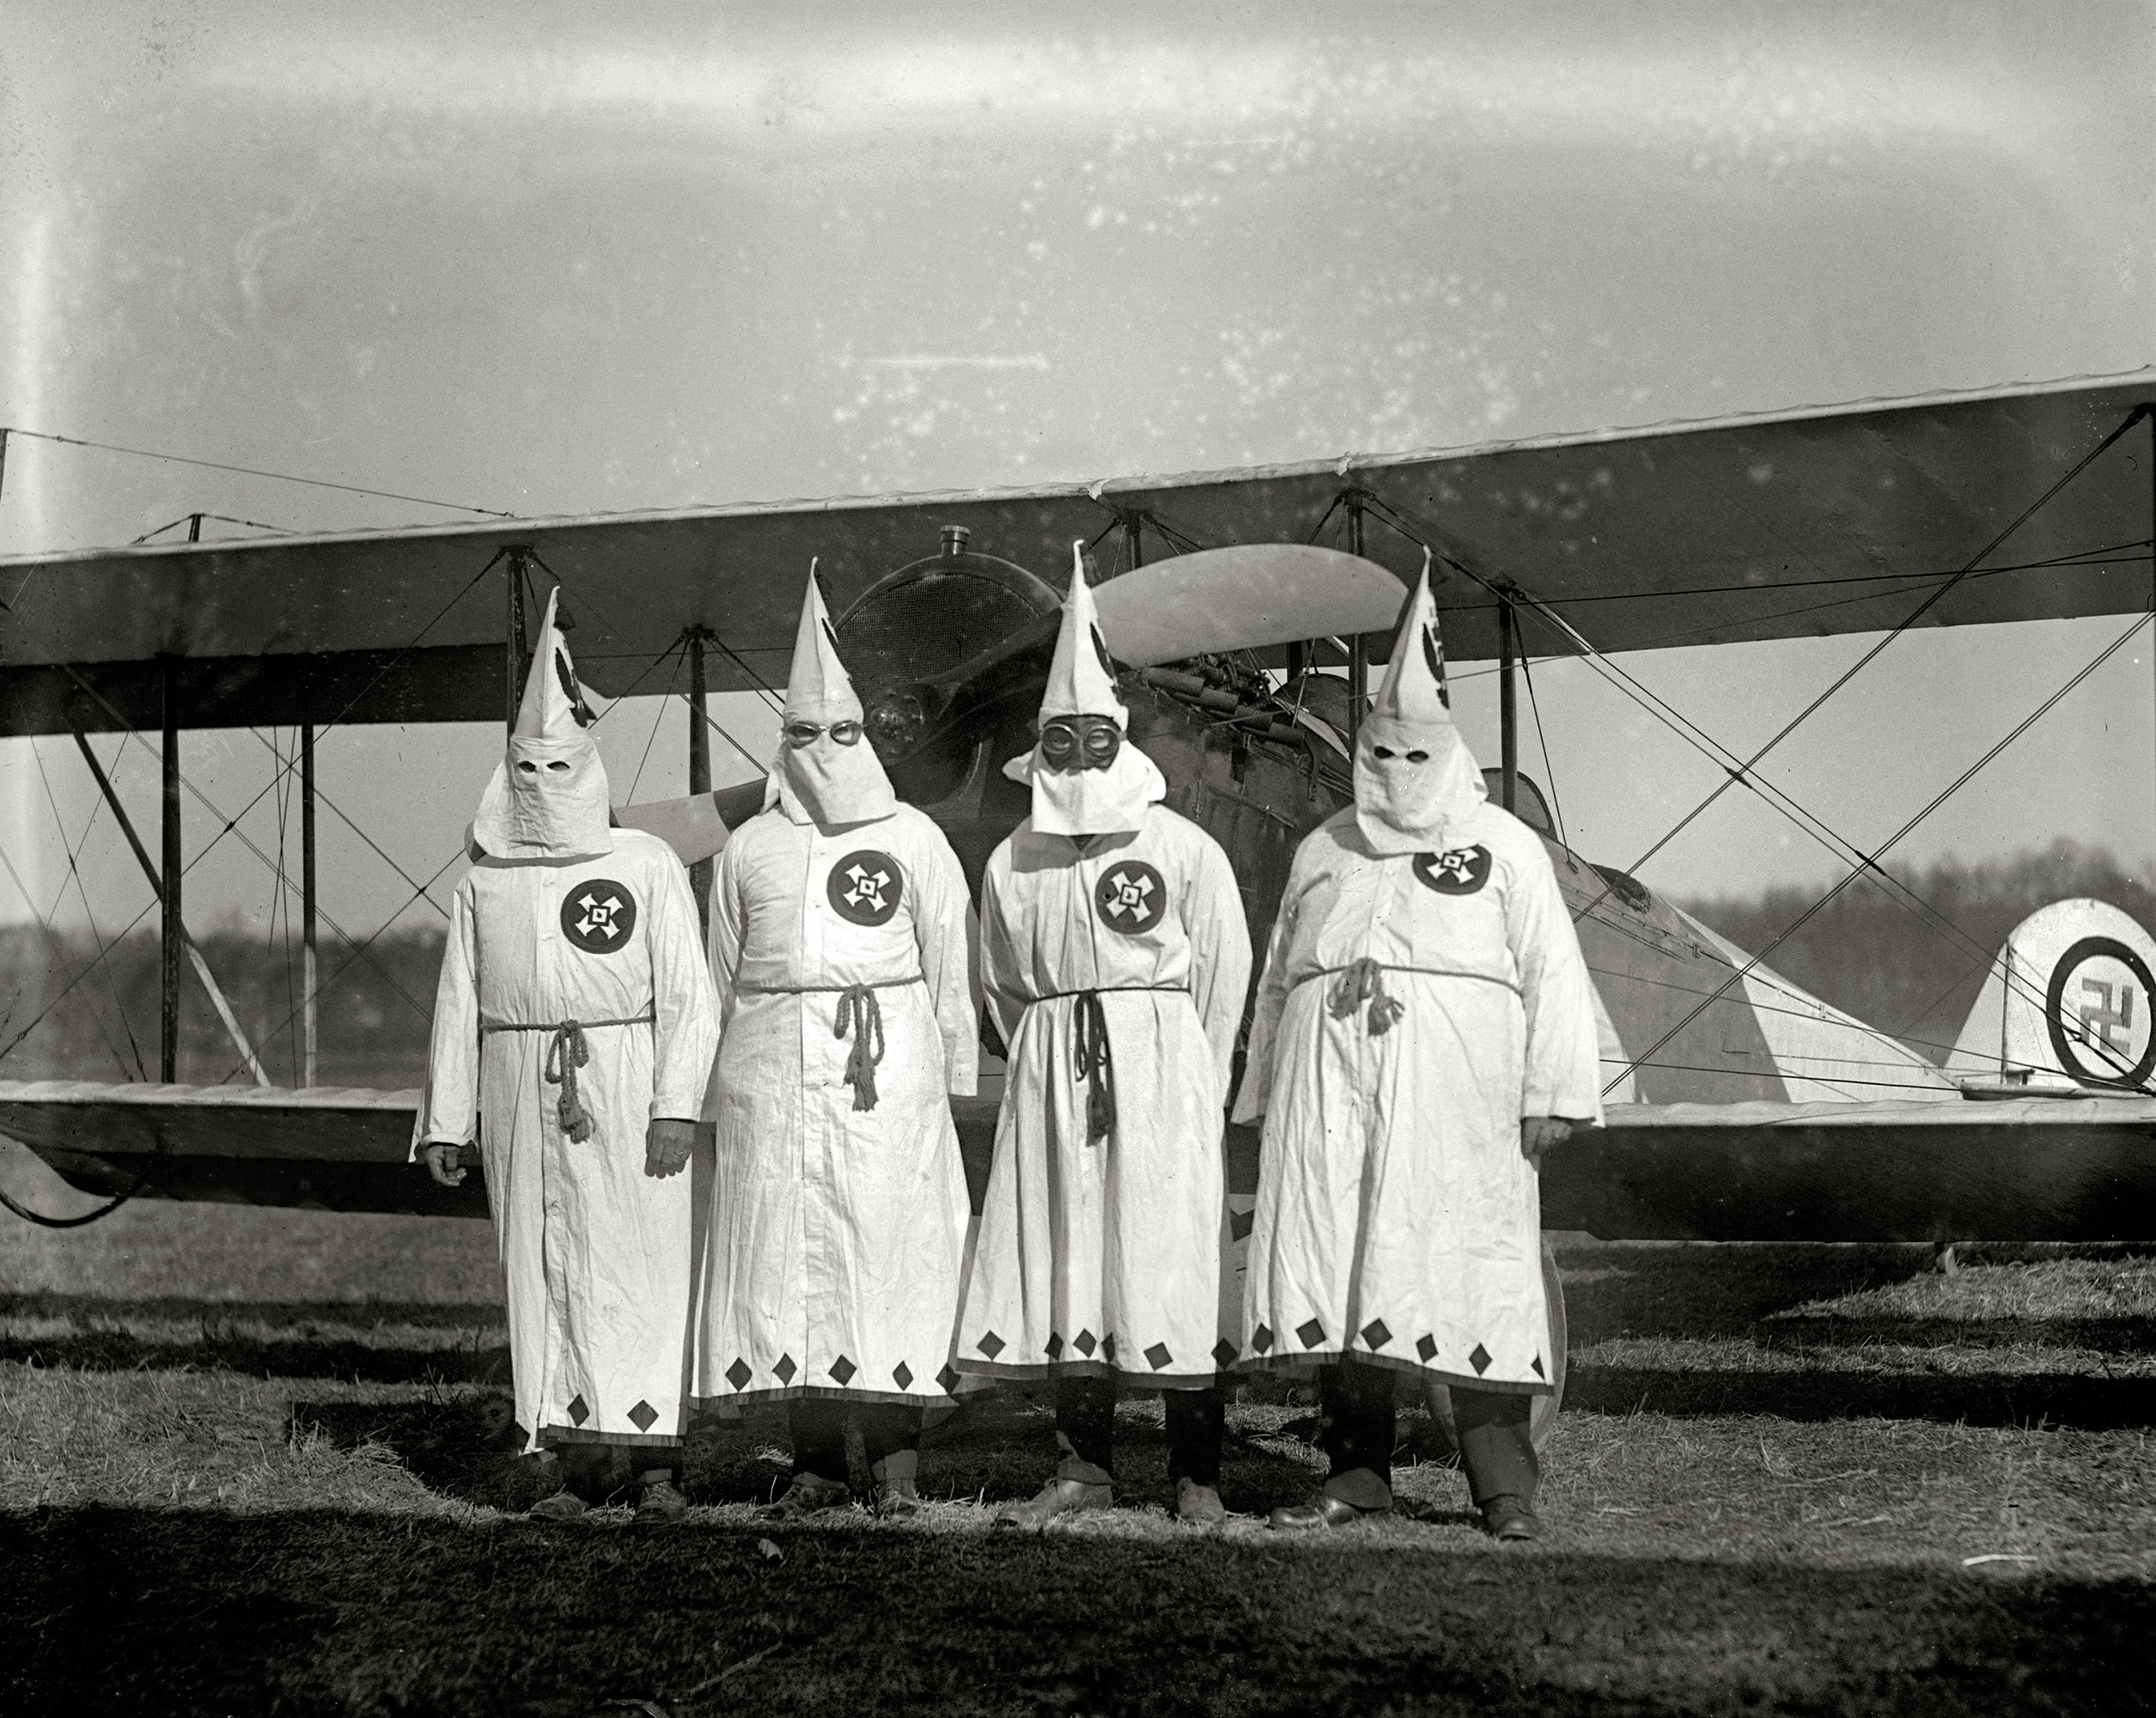 March 18, 1922.  Members of the Ku-Klux-Klan about to take off with the literature which was scattered over the suburbs of the city.  The date coincides with a Klan parade through Washington's Virginia suburbs.